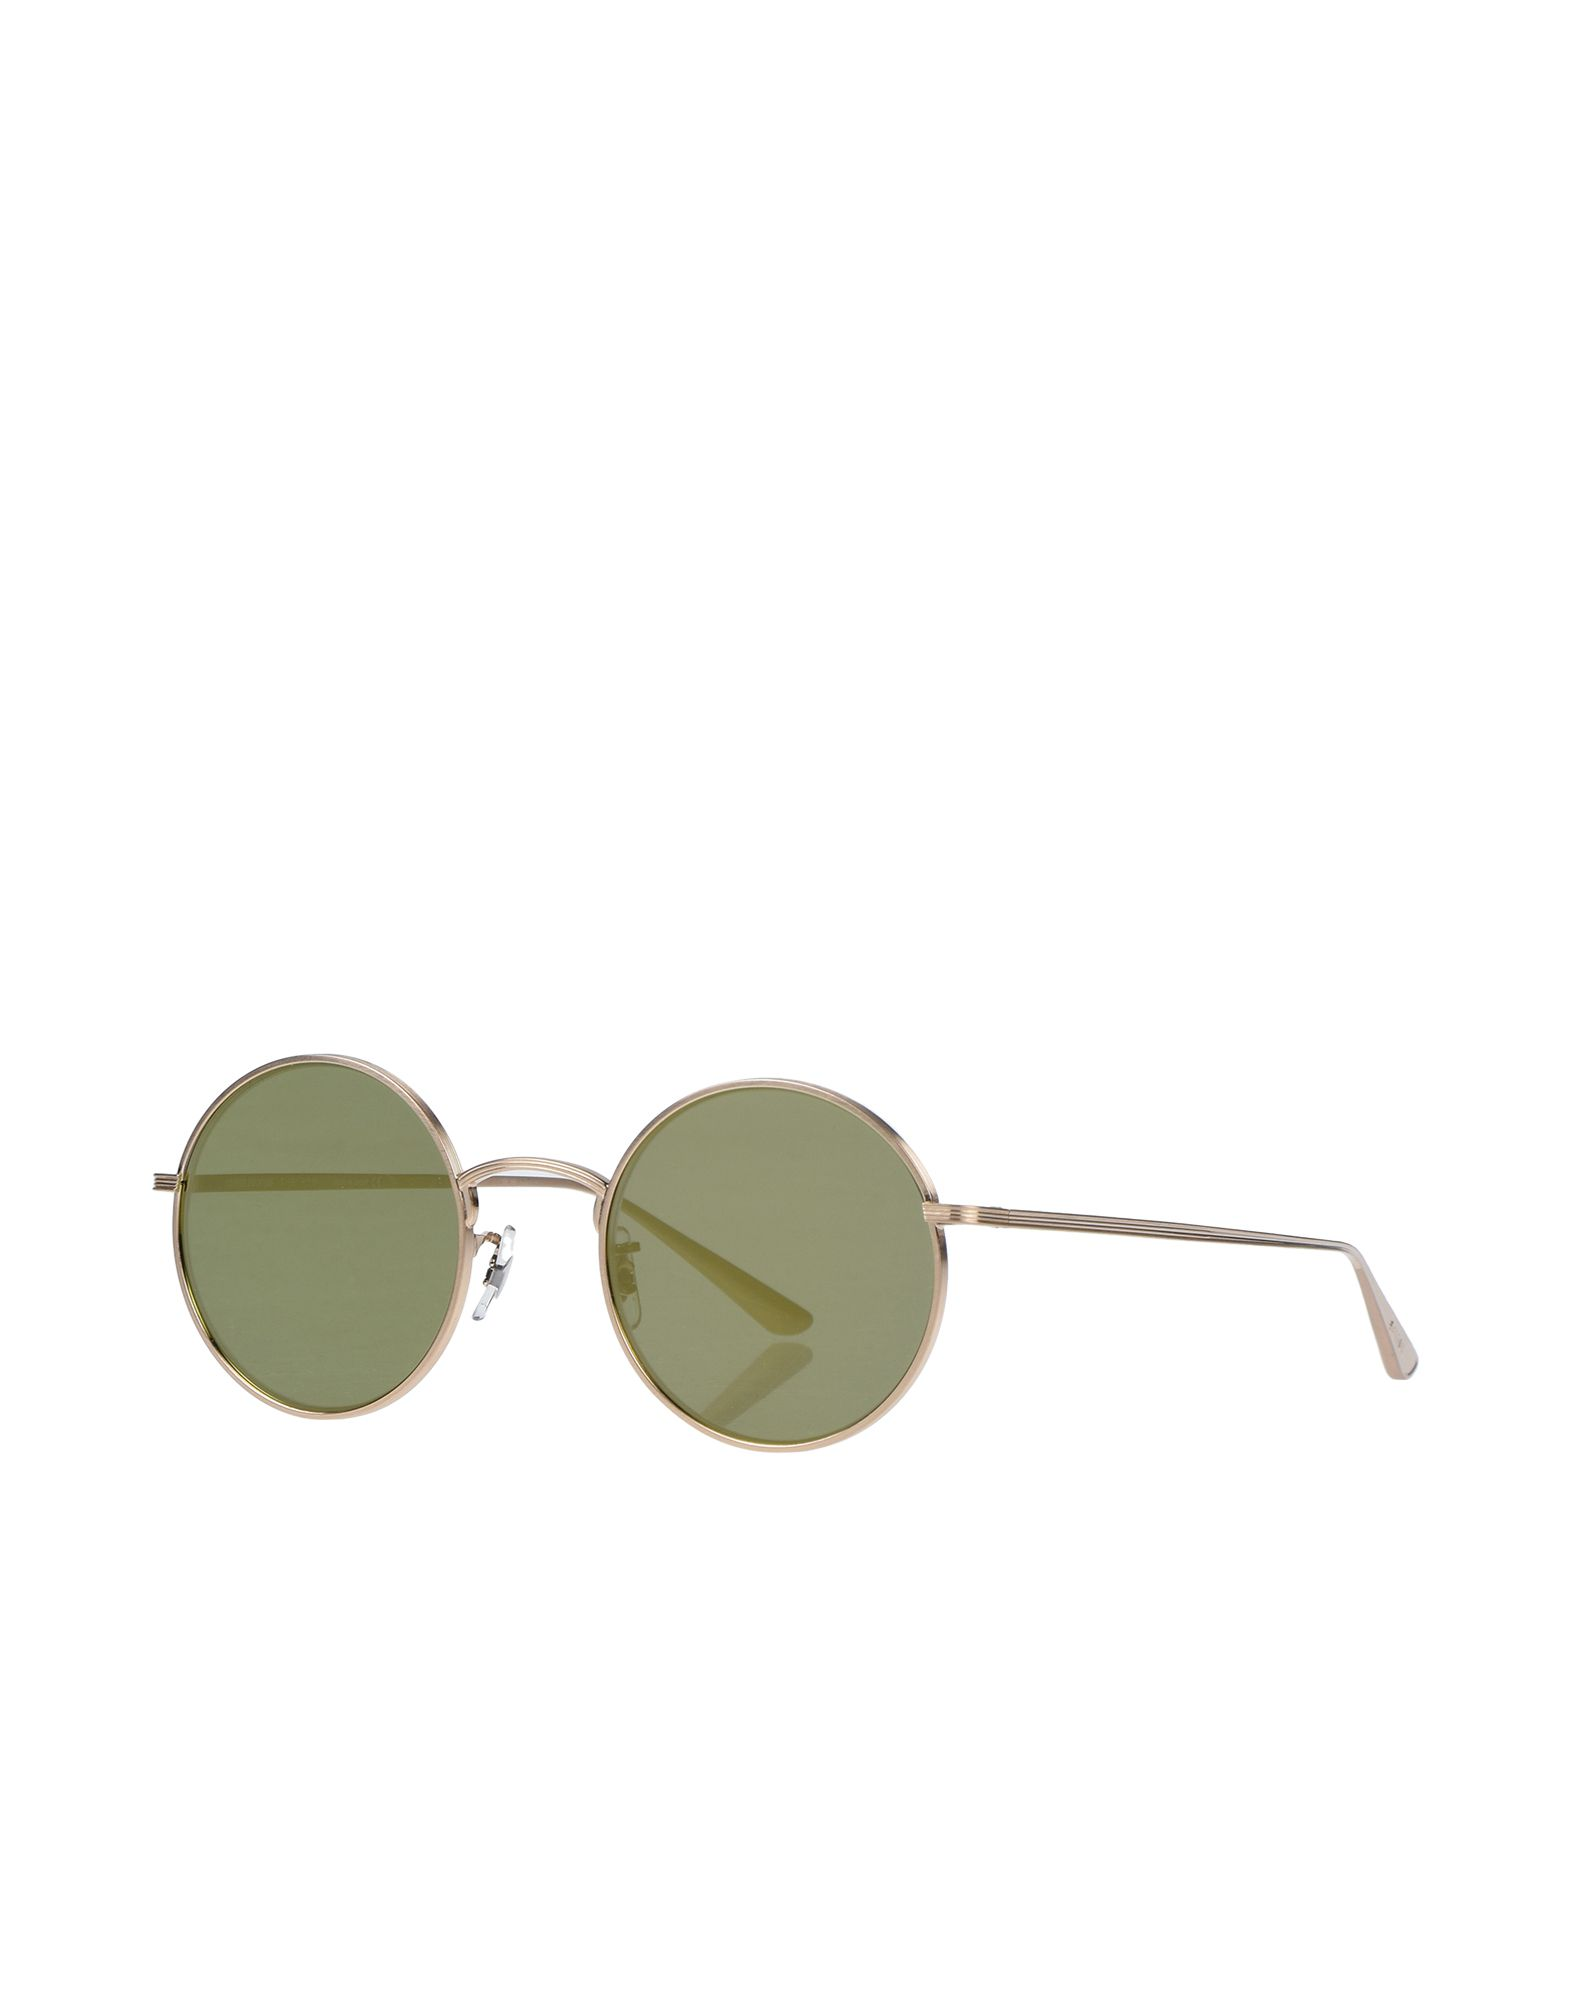 OLIVER PEOPLES THE ROW Солнечные очки oliver wendell holmes over the teacups